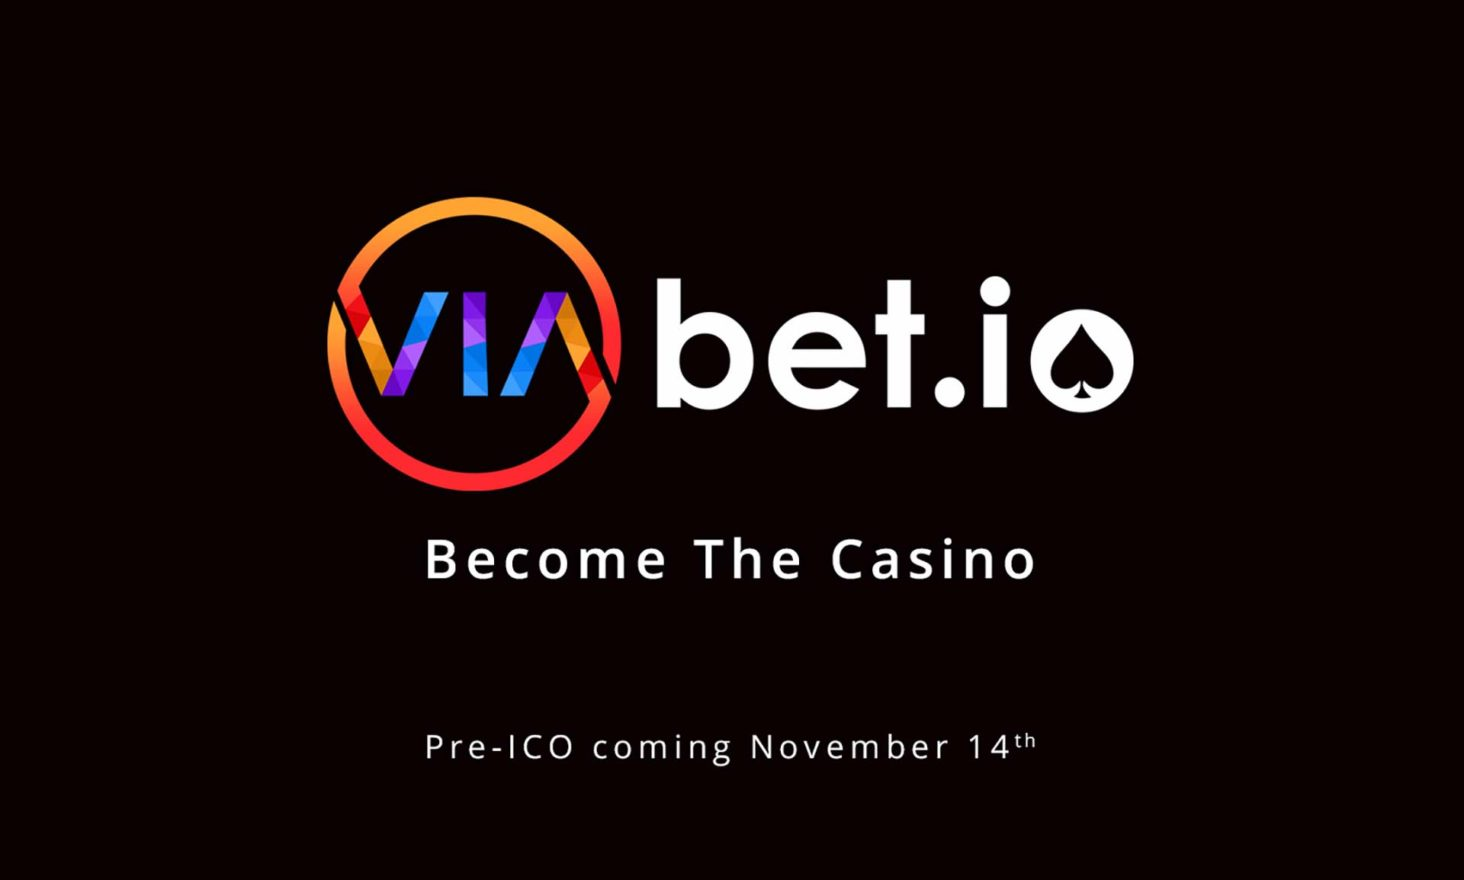 World's First Cloud-Based Betting Platform VIABET Announces ICO